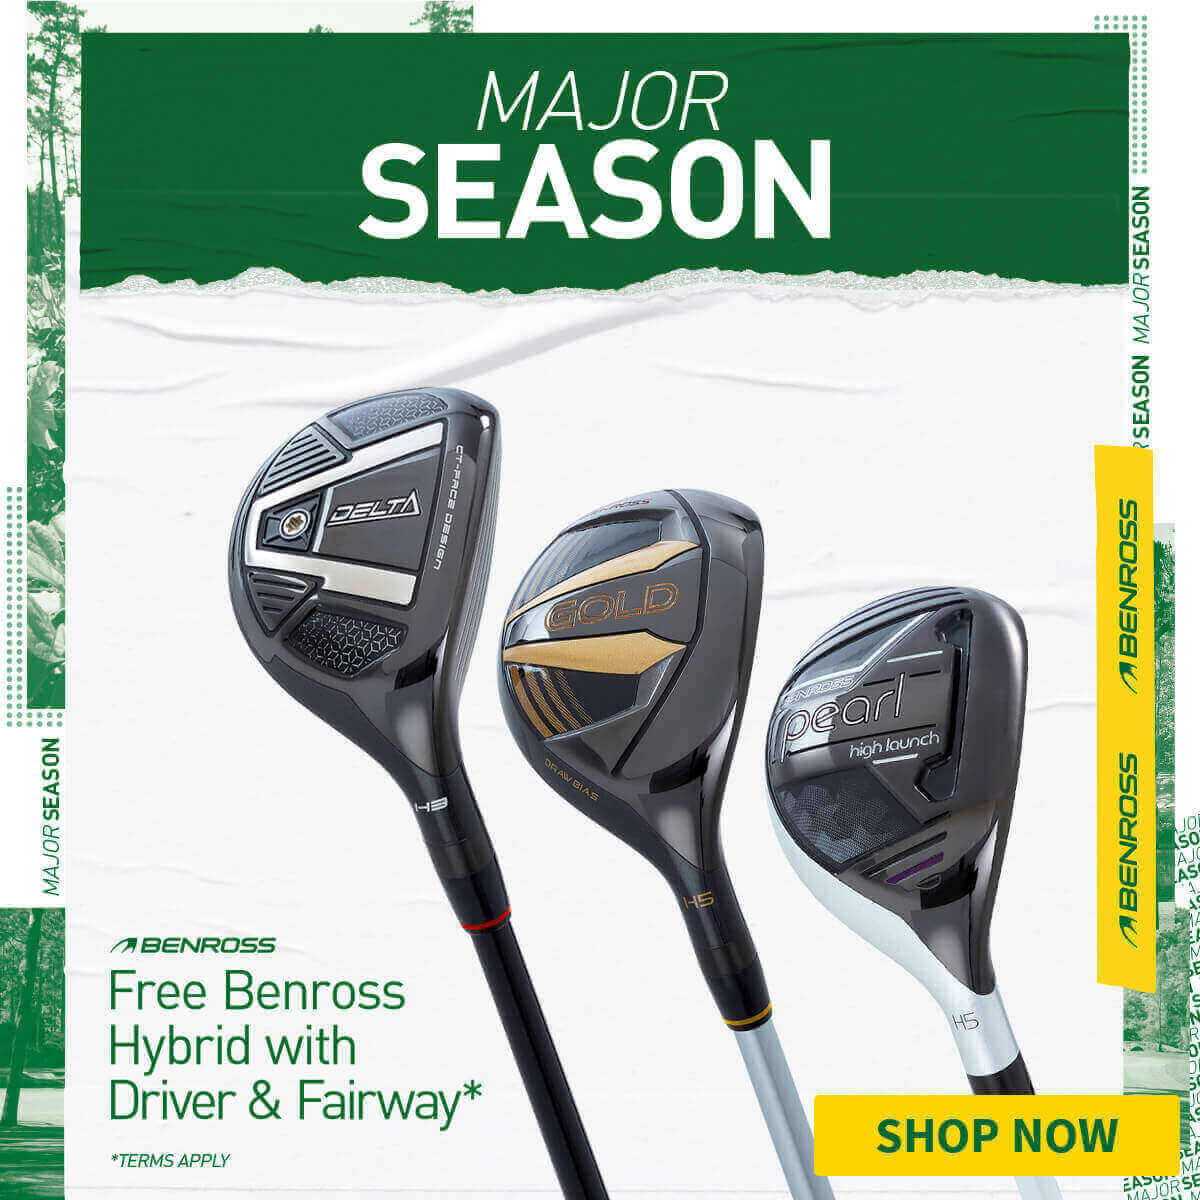 BENROSS DRIVER, FAIRWAY - FREE HYBRID